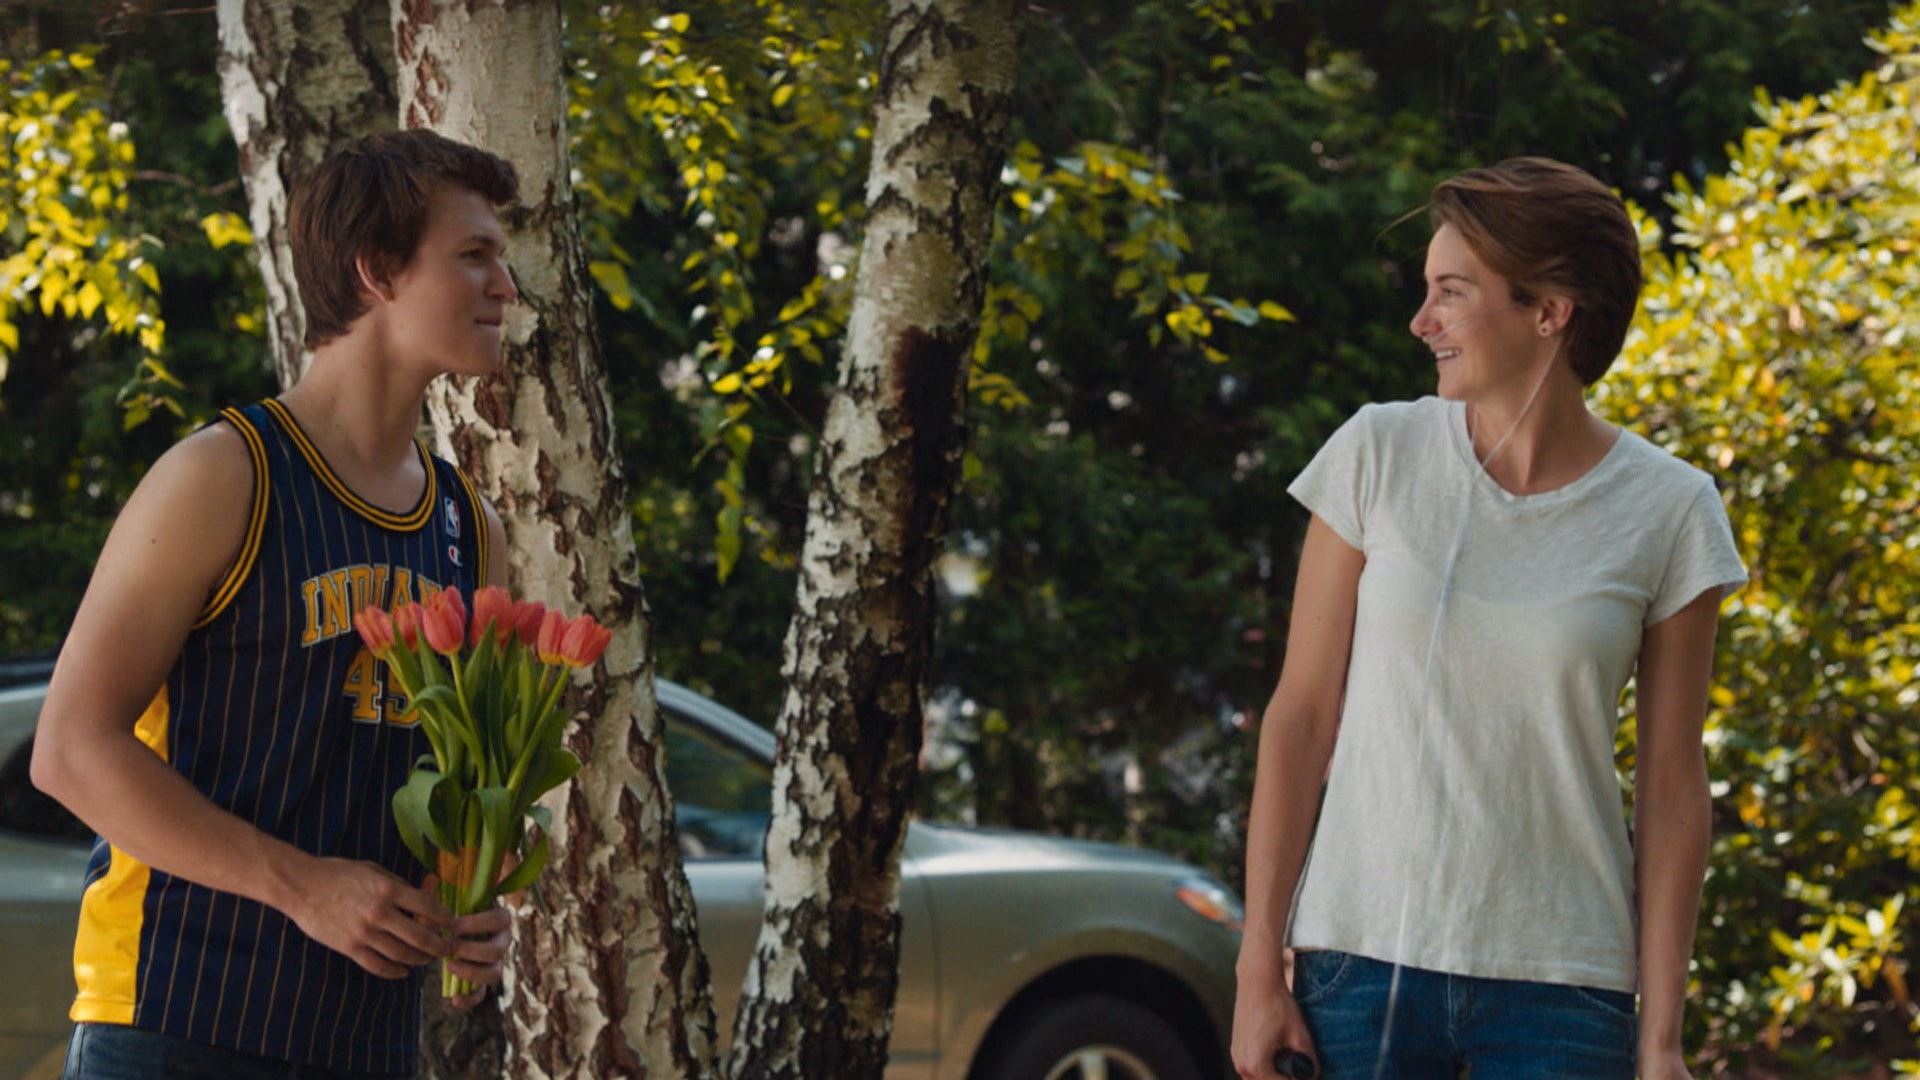 11 Of The Most Profound Quotes From The Fault In Our Stars